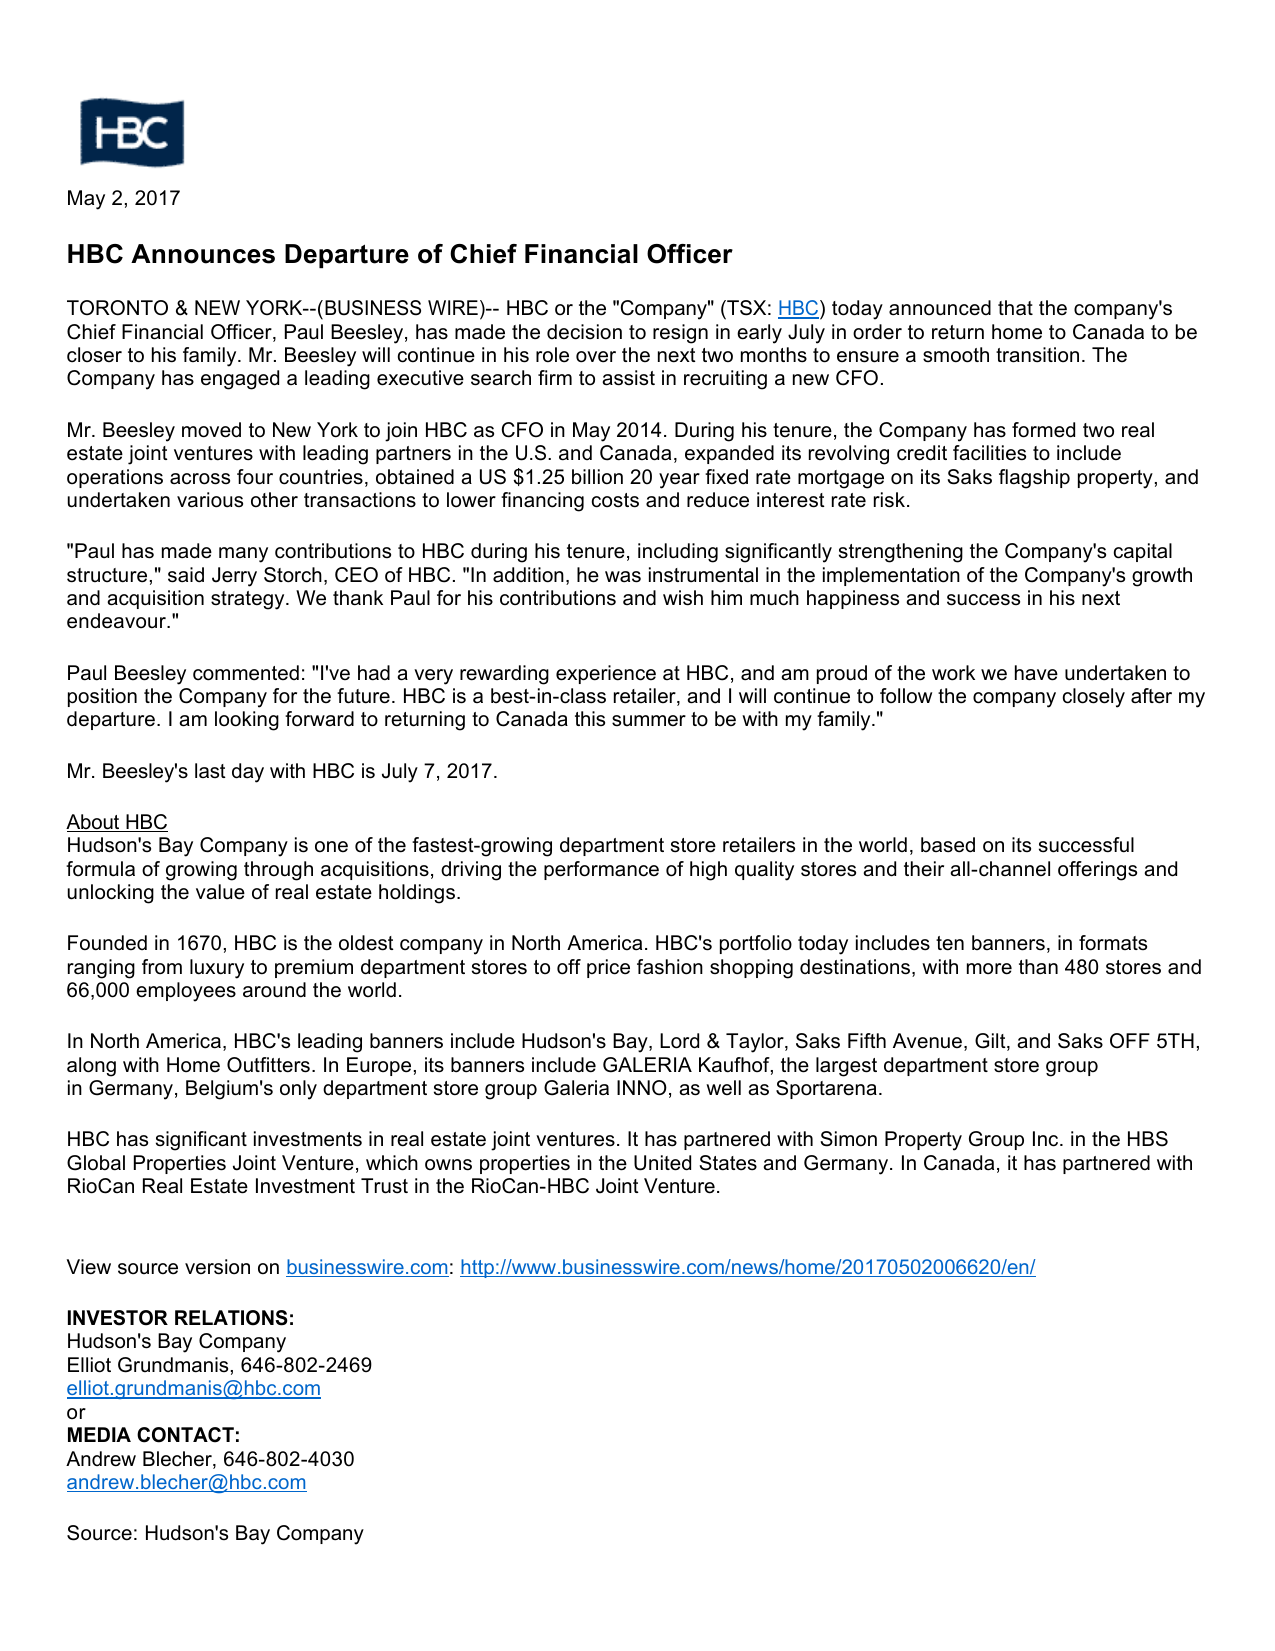 HBC Announces Departure of Chief Financial